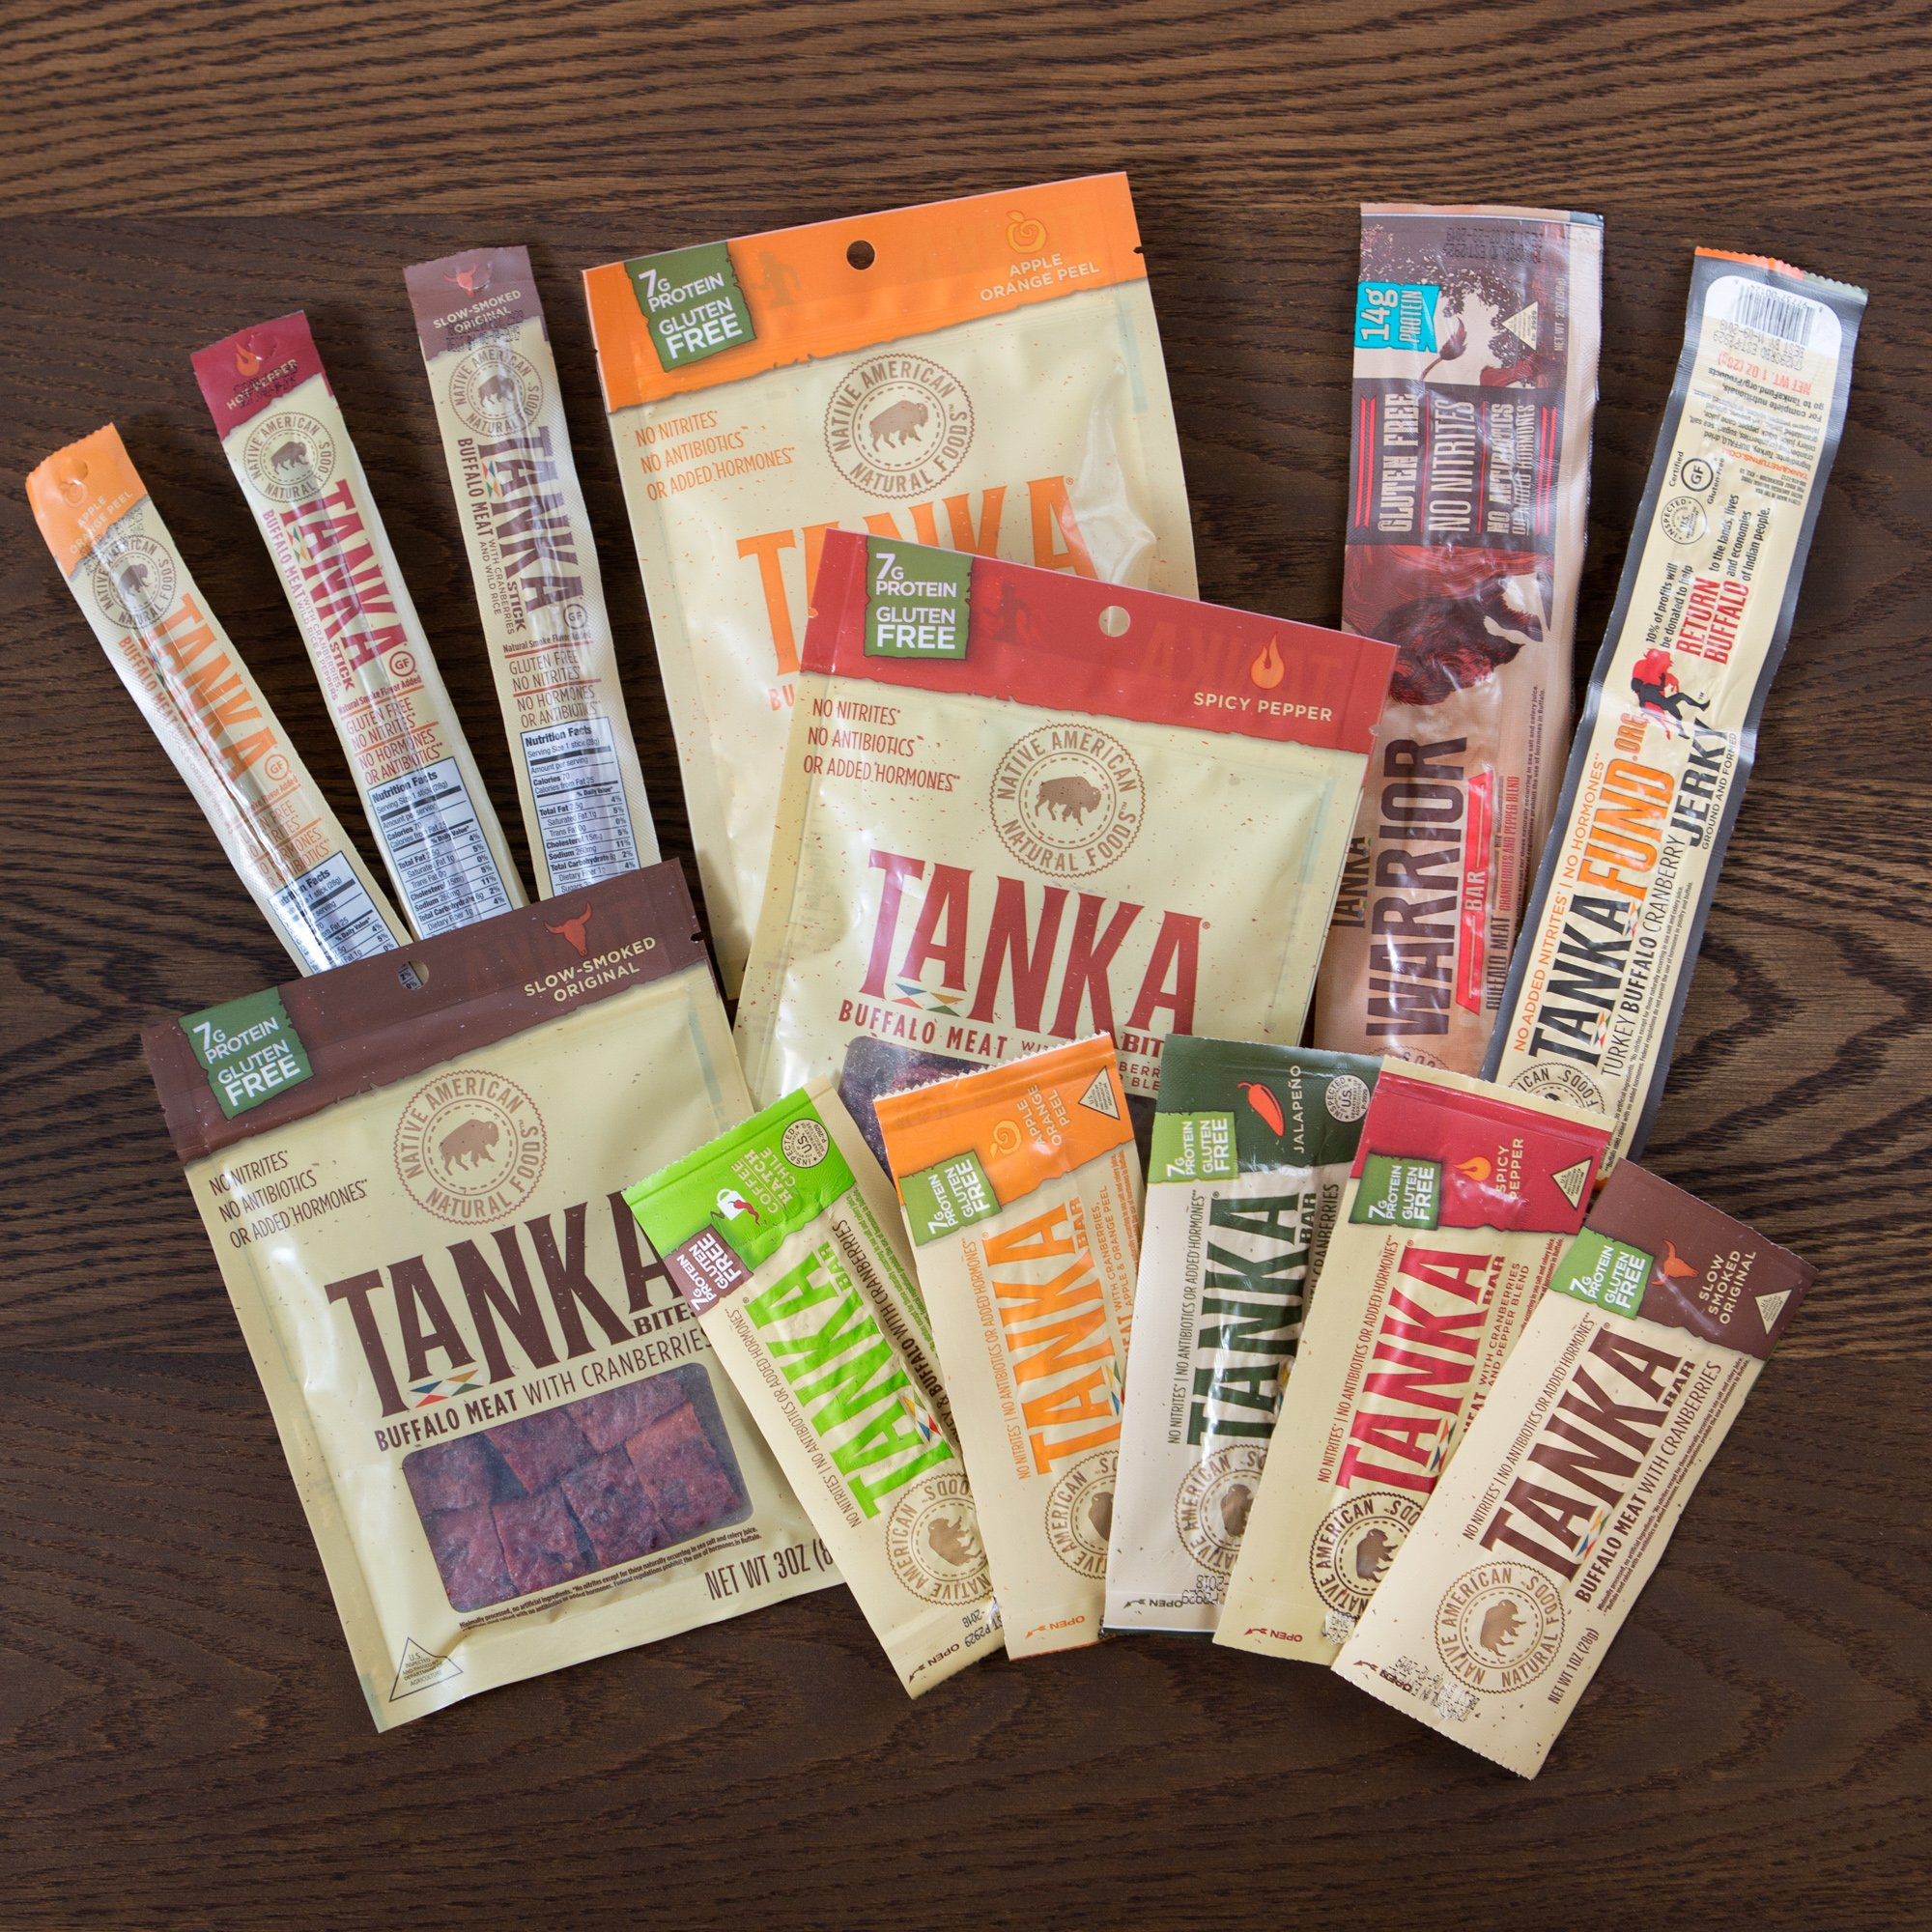 Bison Pemmican Meat Bar with Buffalo and Cranberries by Tanka, Gluten Free, Beef Jerky Alternative, Slow Smoked Original, 2 Ounce Bar, Pack of 12 by Tanka (Image #12)